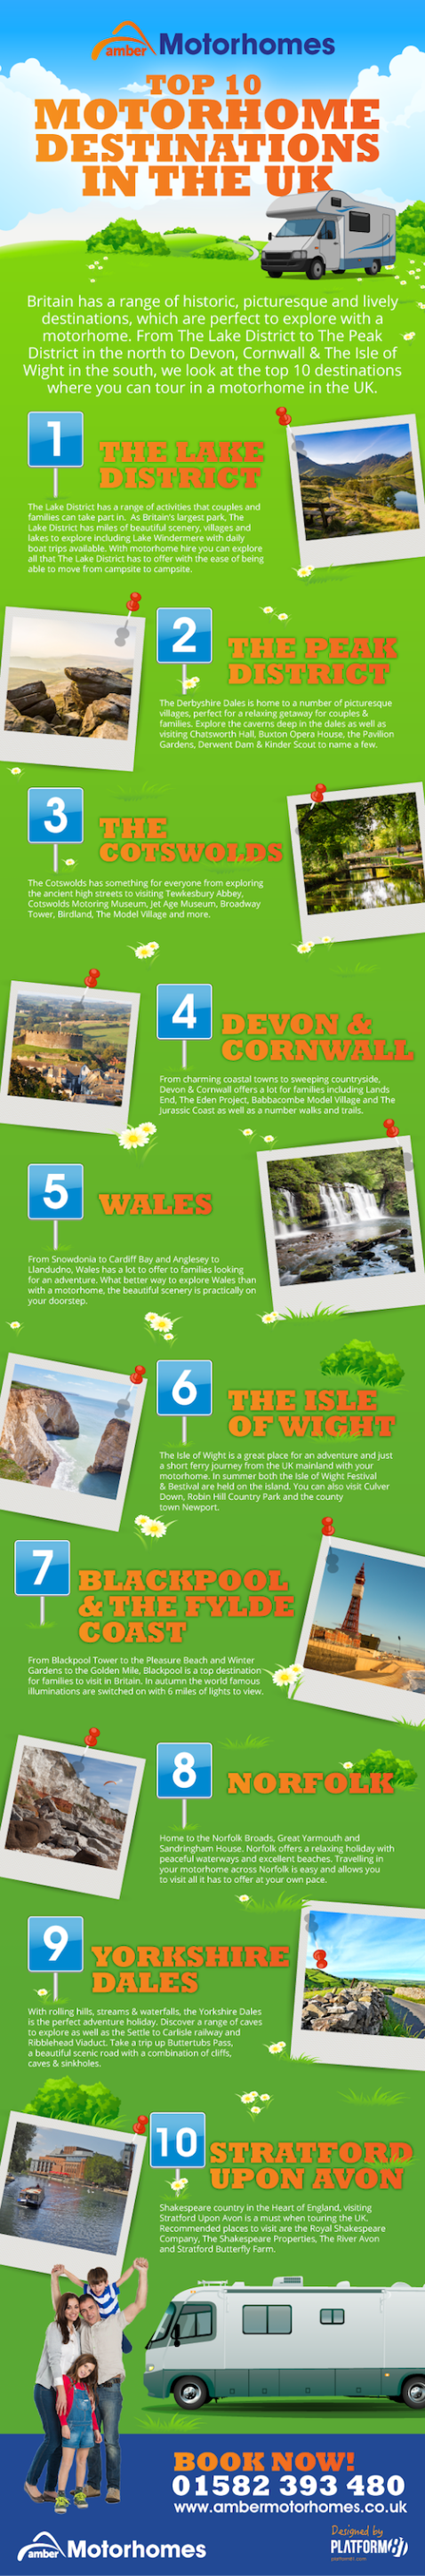 Best Destinations to Visit in the UK by Motorhome